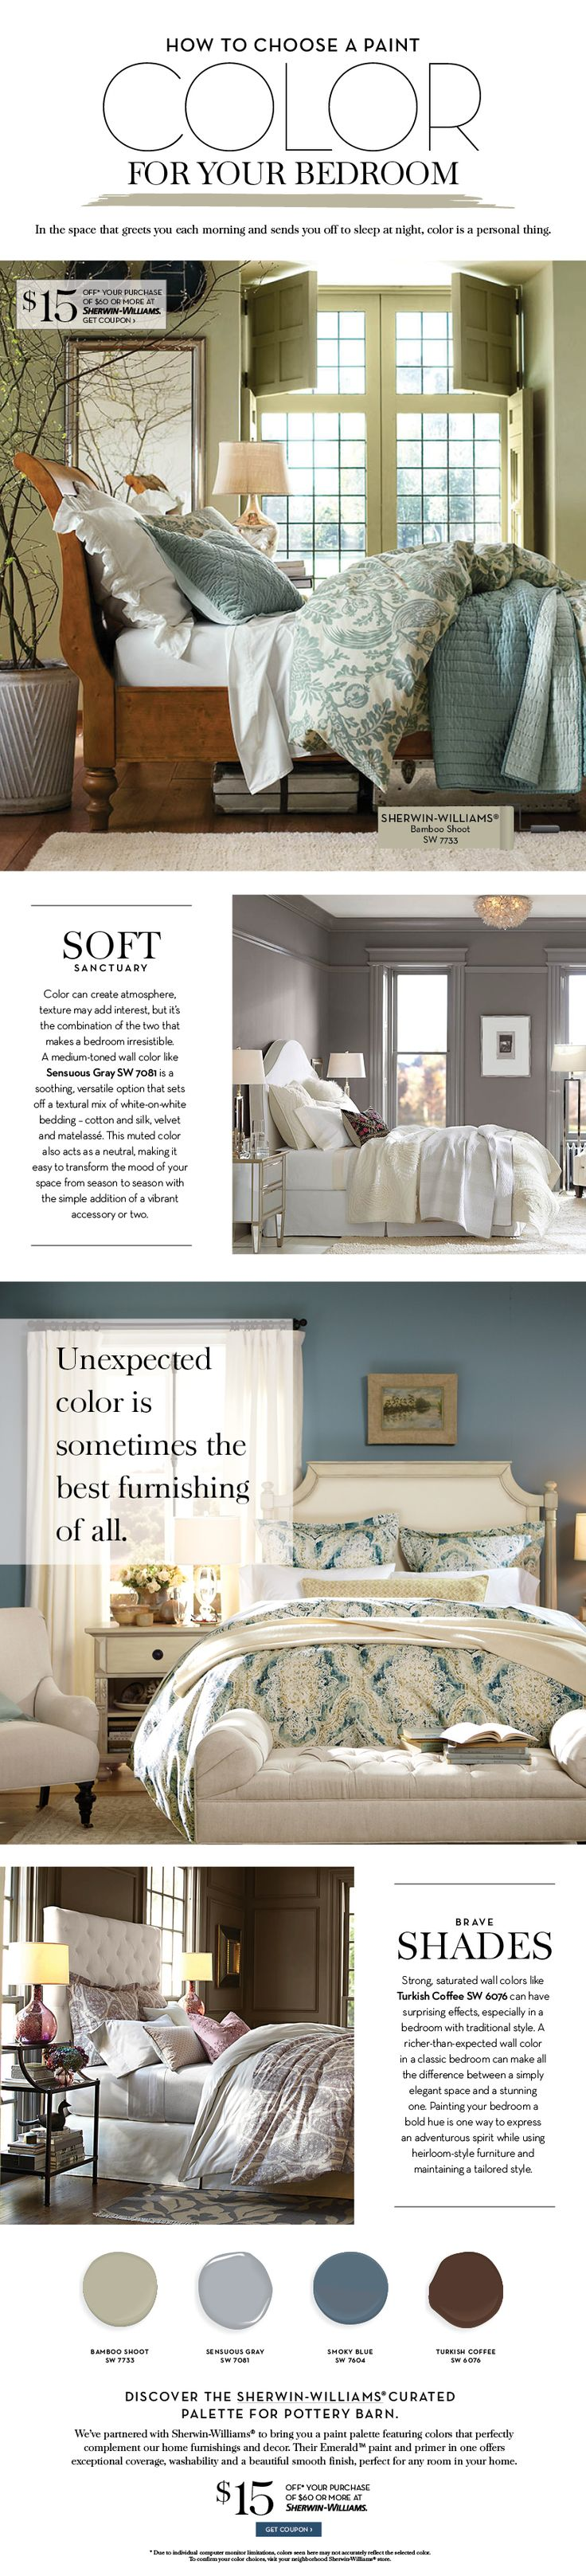 Choose a Paint Color For Your Bedroom | Pottery Barn